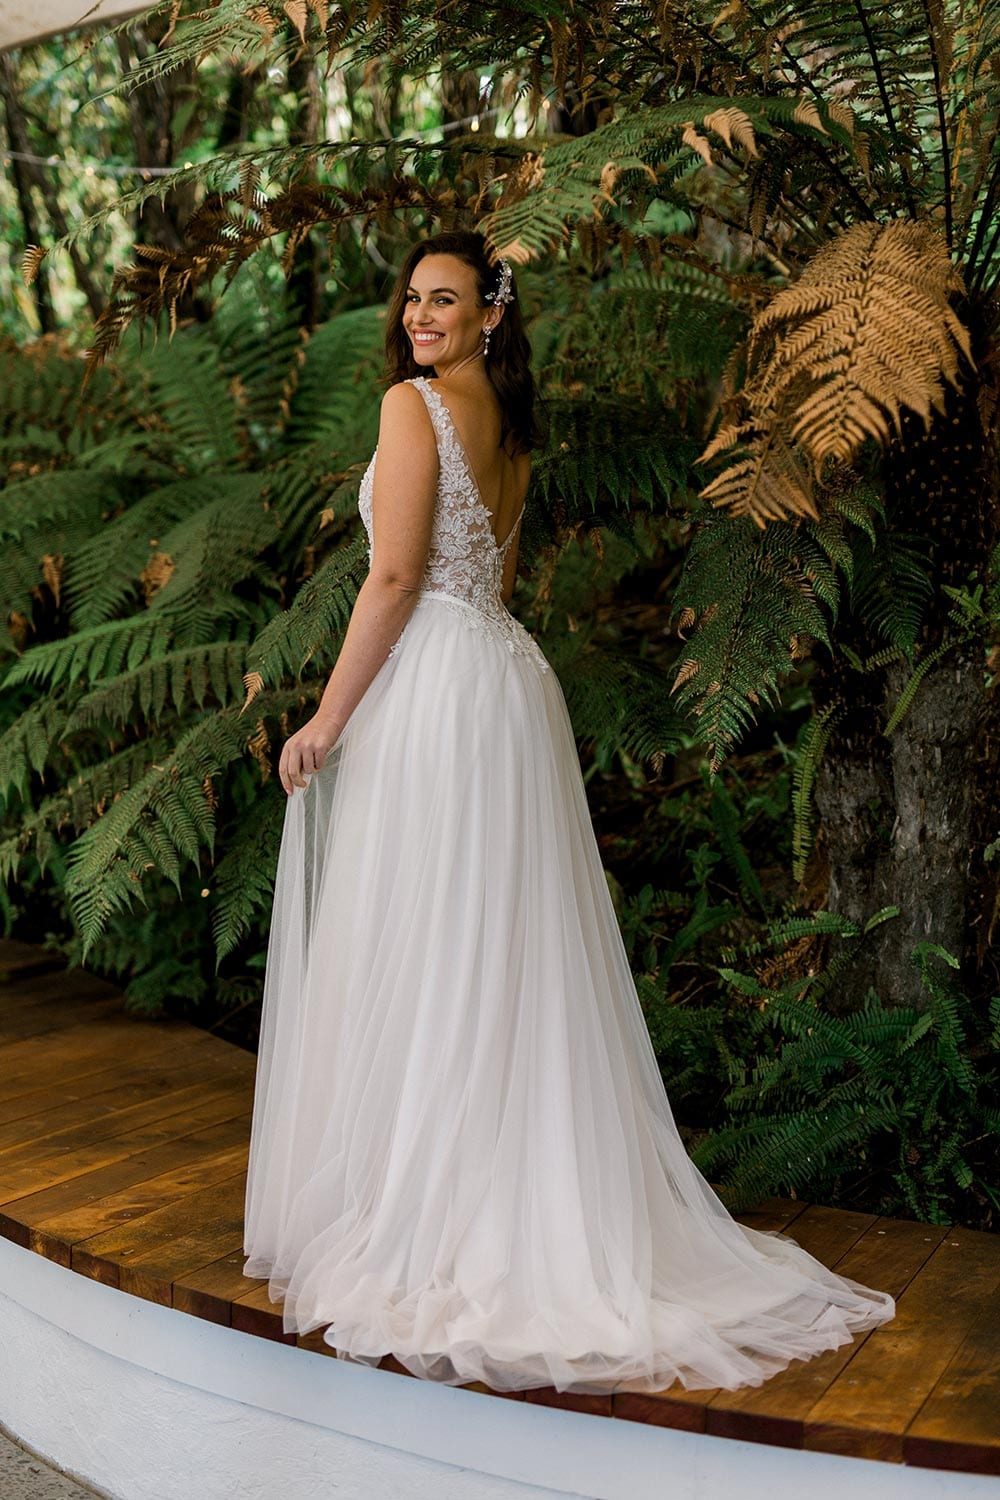 Vivian Wedding gown from Vinka Design - A stunning gown with a deep V-neckline on both the front & back. Fitted semi-sheer nude bodice embellished with a beaded floral lace, a soft layered tulle skirt. Worn in conservatory with fern background, model facing away showing train.